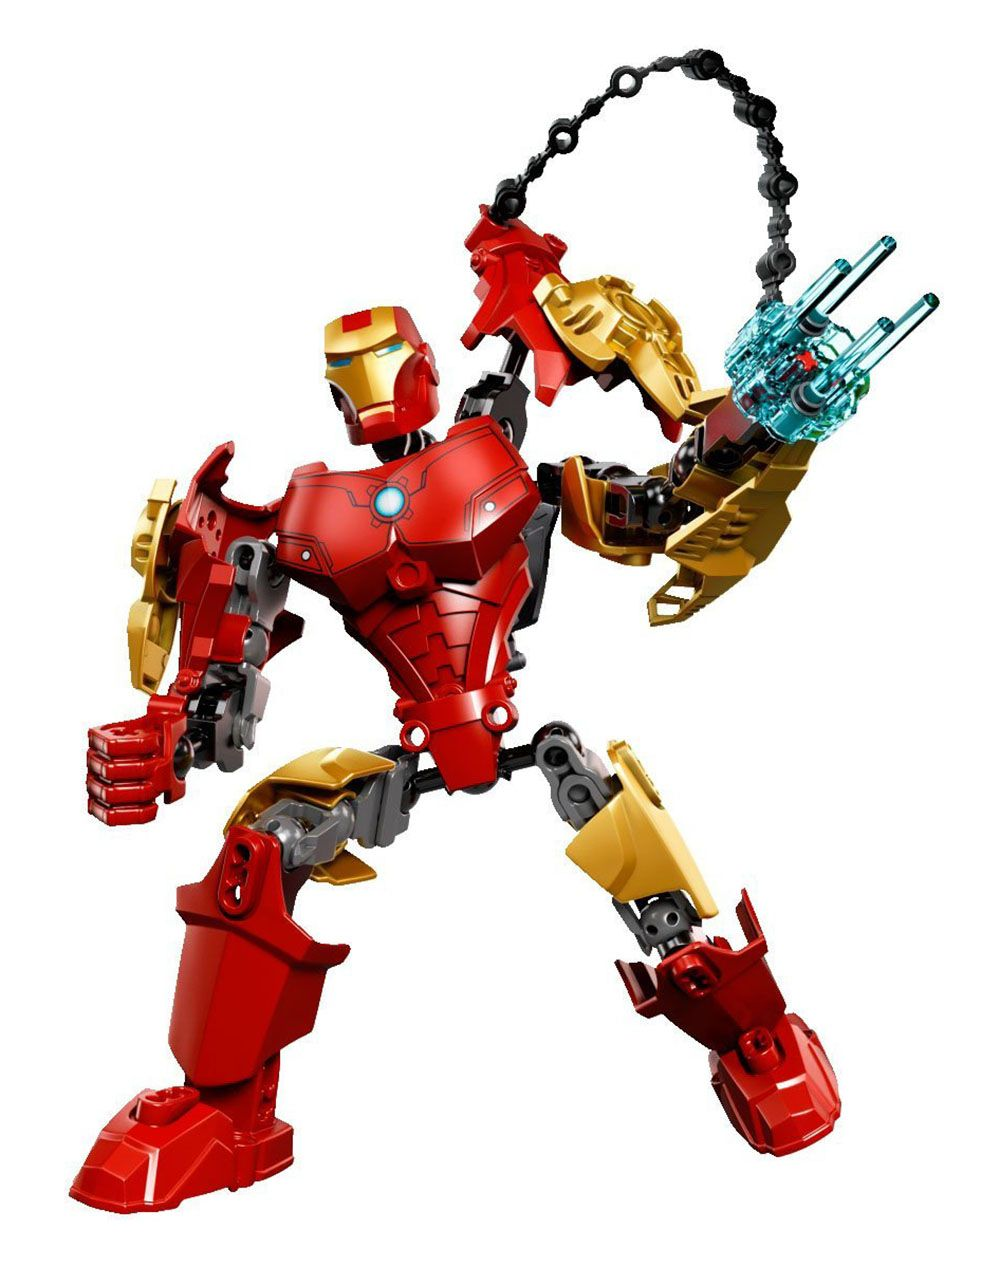 Lego marvel super heroes 4529 pas cher iron man - Lego iron man 3 ...